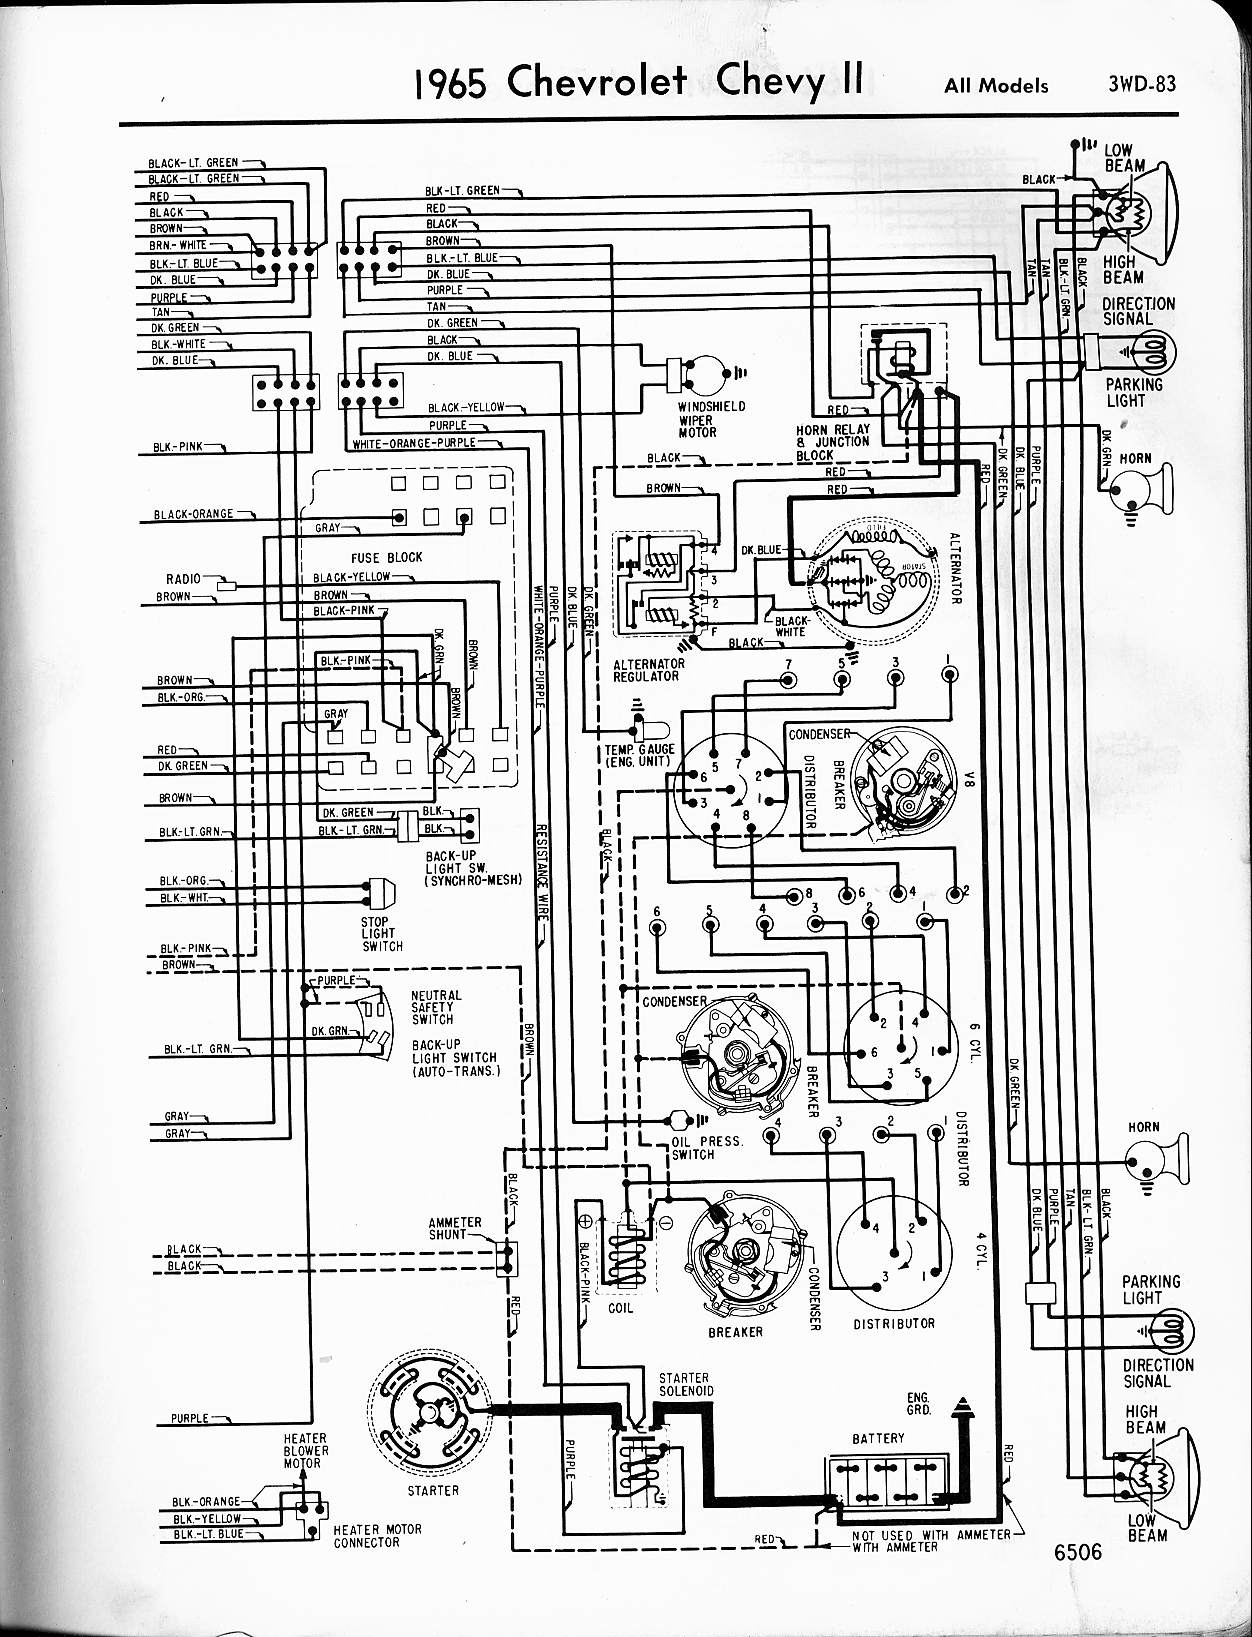 1968 C10 Fuse Box Diagram Wiring Schematic Detailed 70 Camaro 1970 Chevrolet Of The Chevy